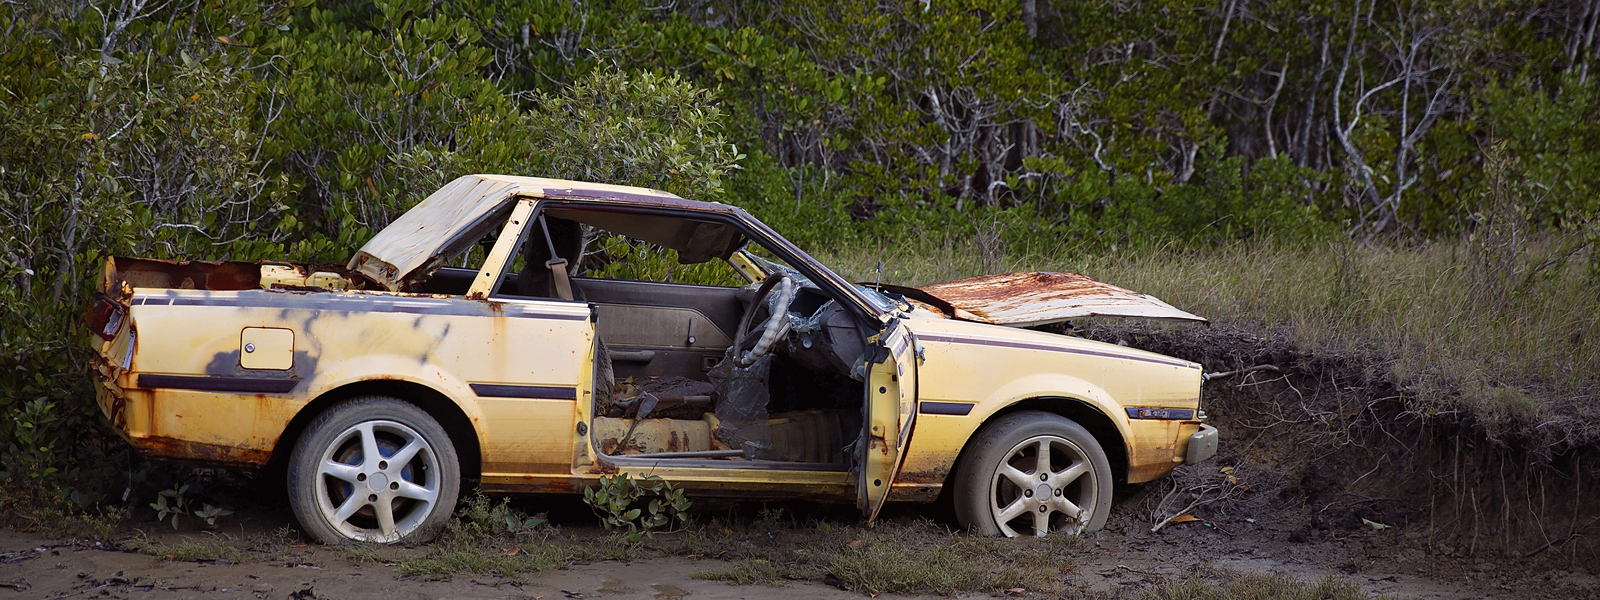 Abandoned car in the bush